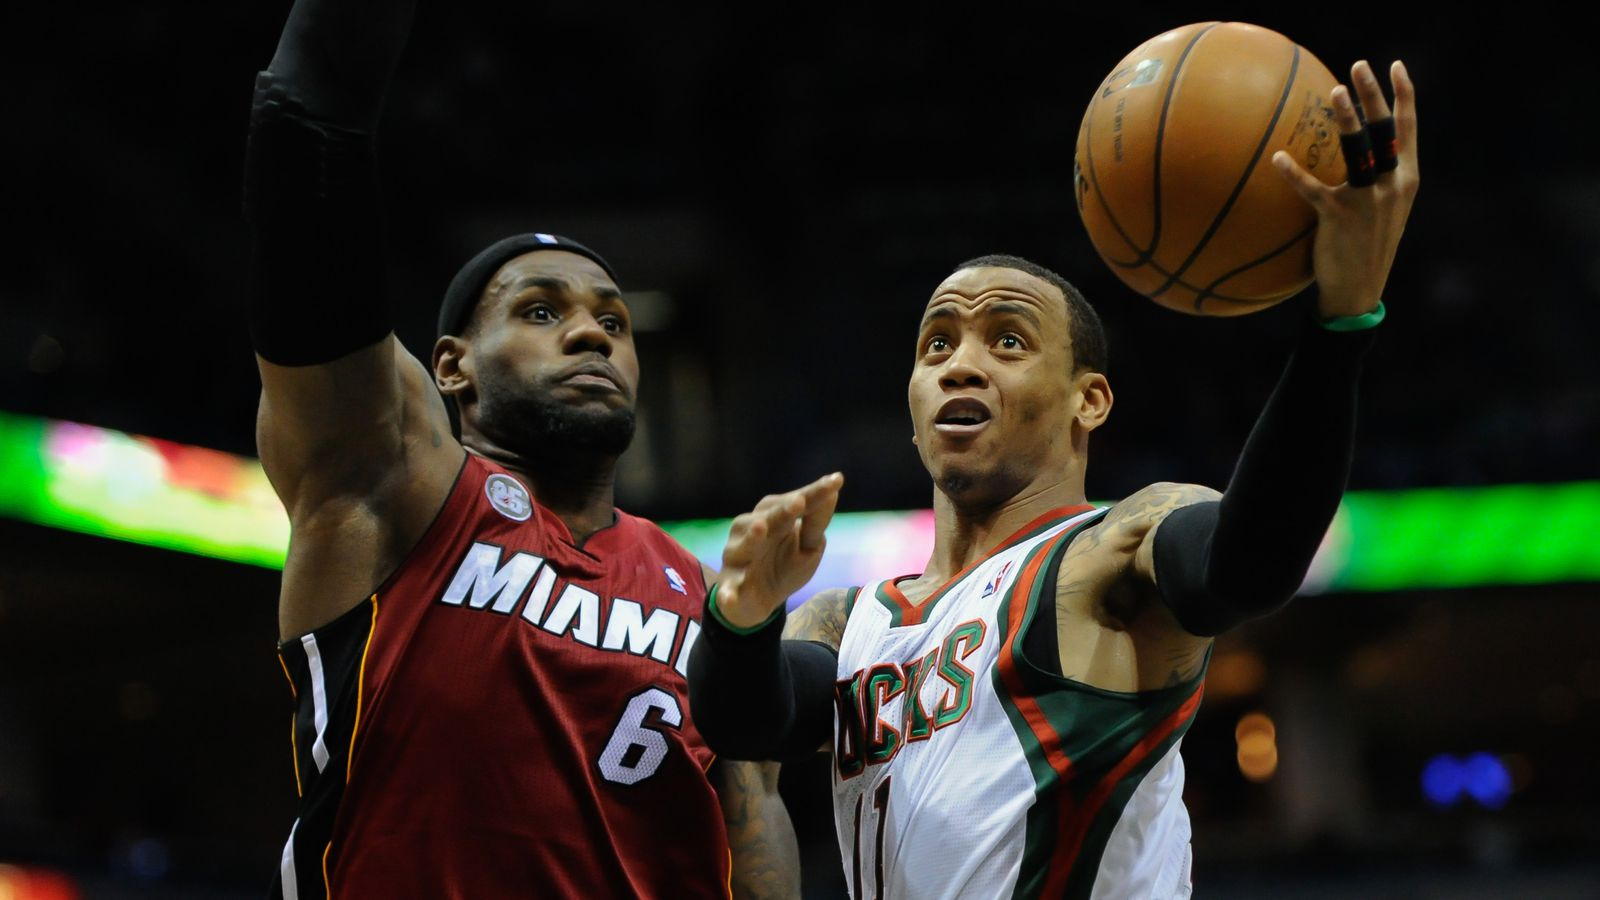 Heat Vs Bucks Image: NBA Playoff Schedule 2013, Heat Vs. Bucks: Miami Opens